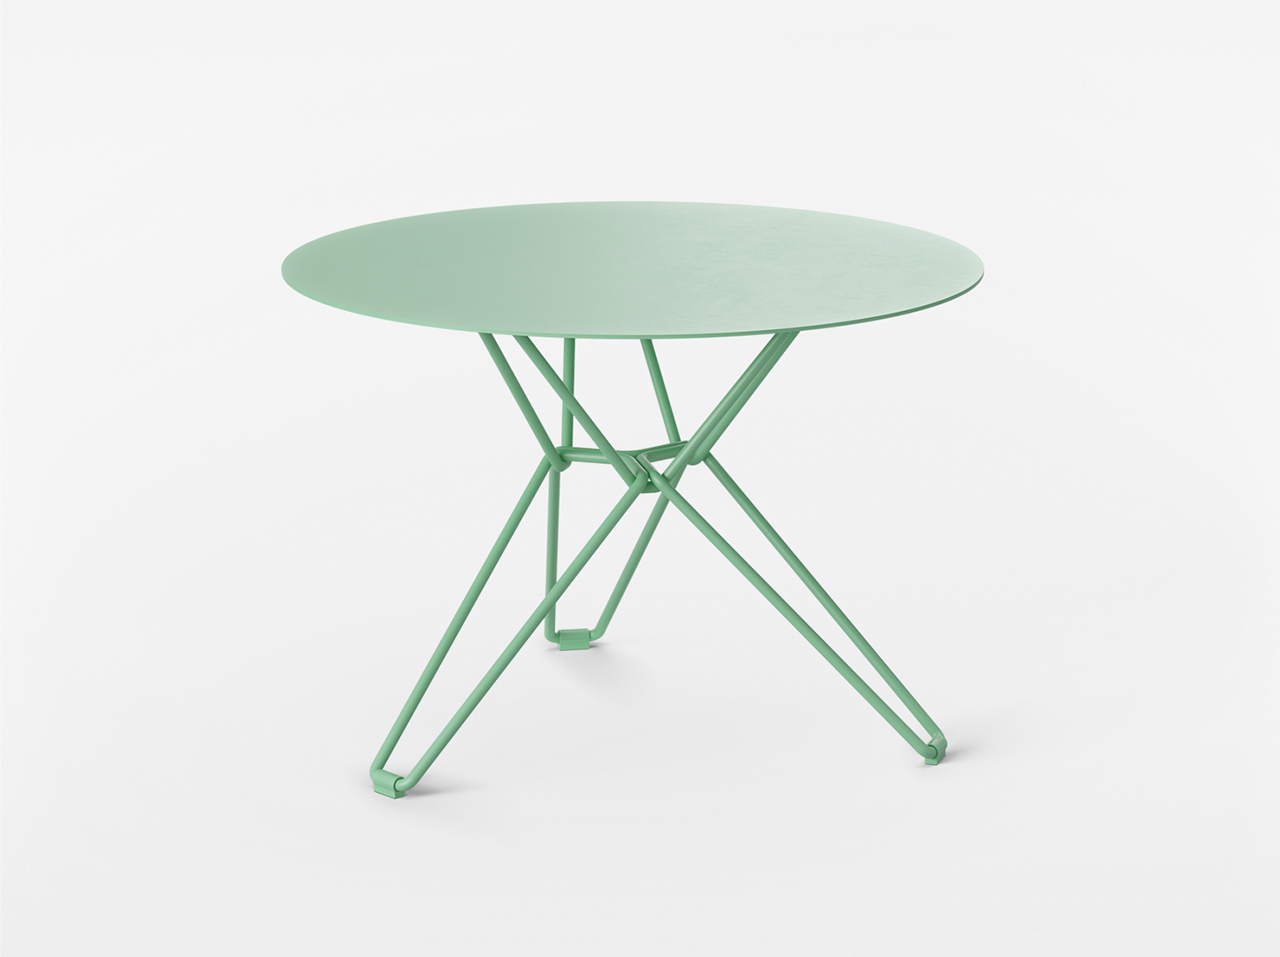 green side table on white background